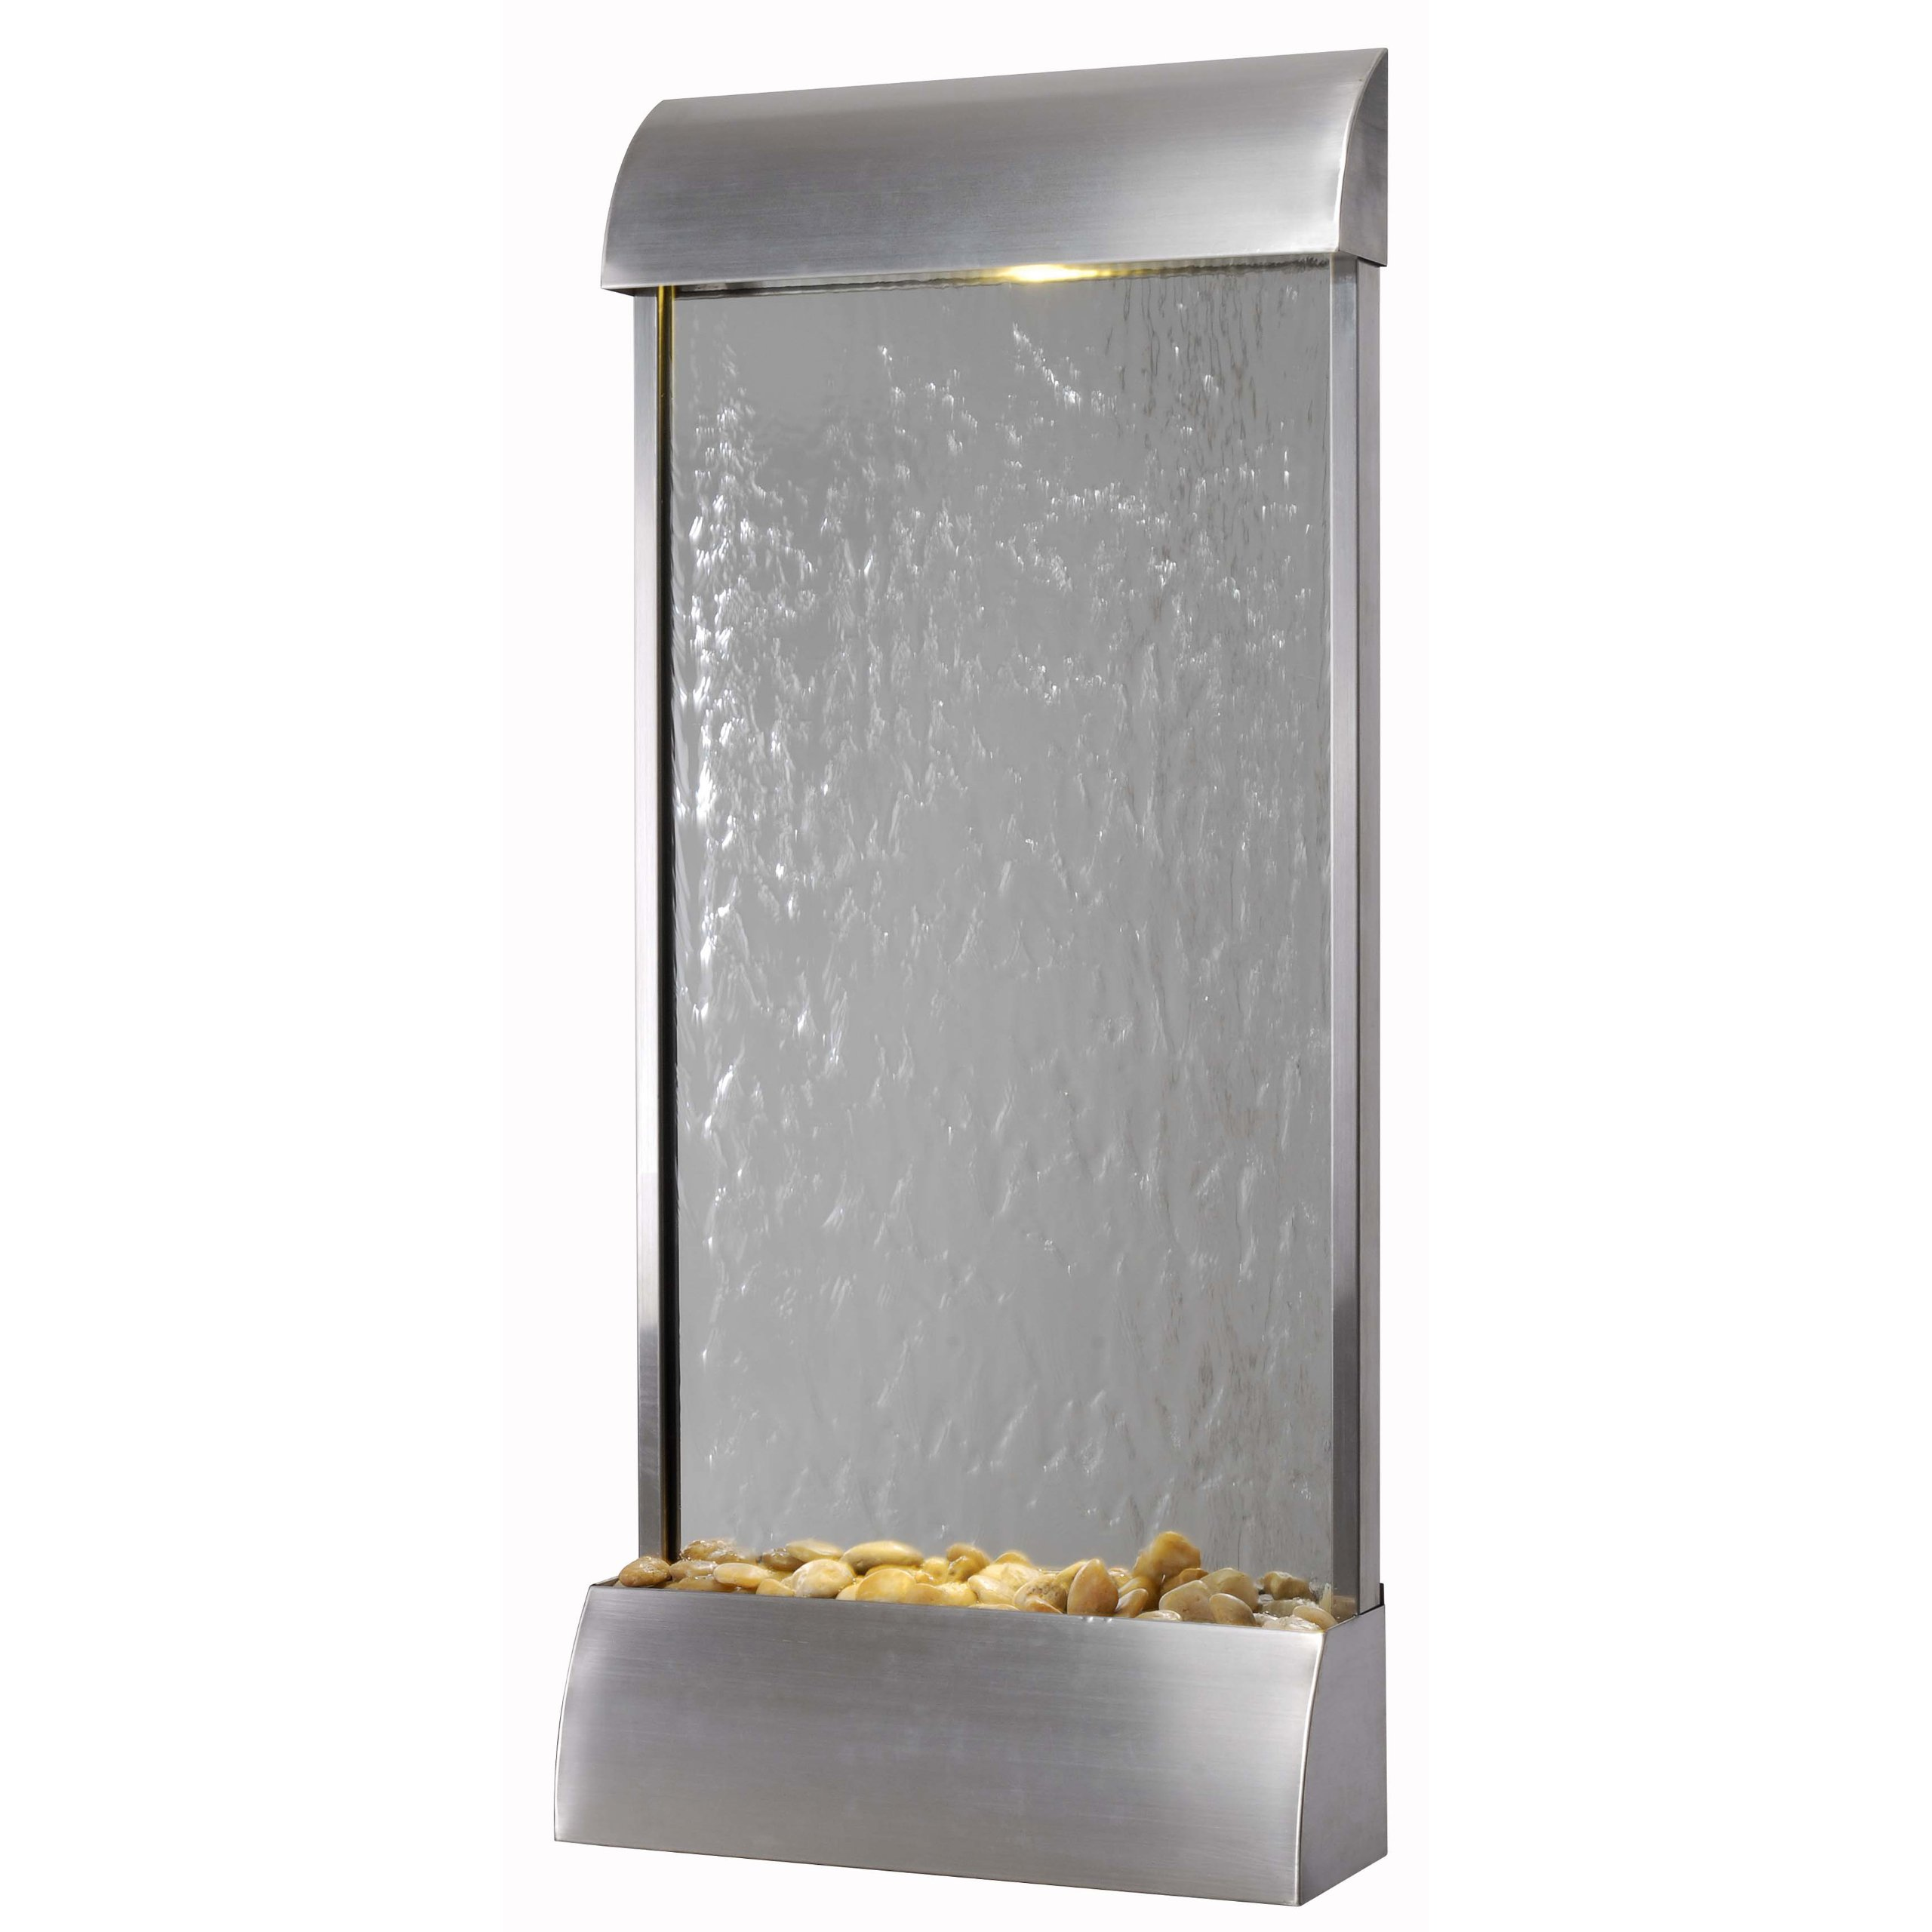 Kenroy Home 50053STST Waterville Floor/Wall Fountain, Stainless Steel Finish by Kenroy Home